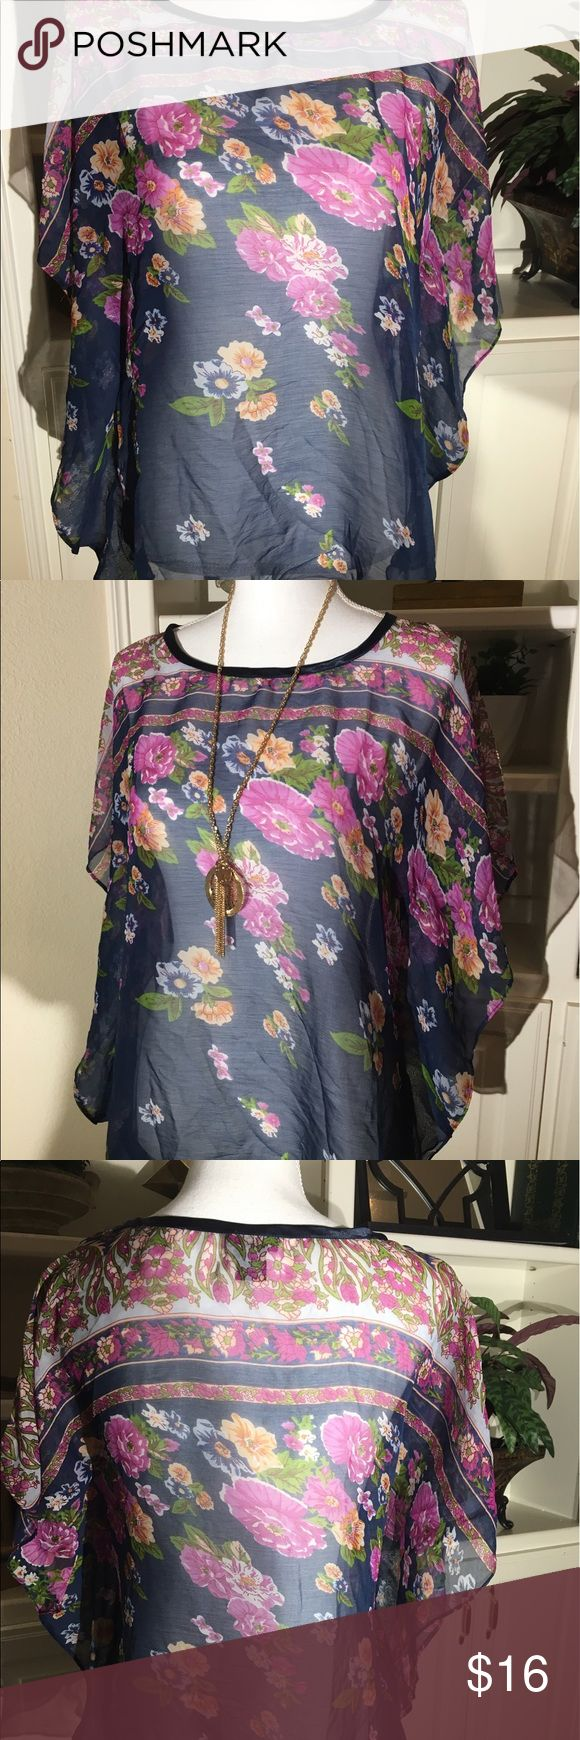 Gorgeous Sheer Floral Top Size M Sheer Floral Batwing Sleeve Top in Beautiful Colors! So summery and lightweight to keep you cool! Size Medium Rue 21 Tops Blouses